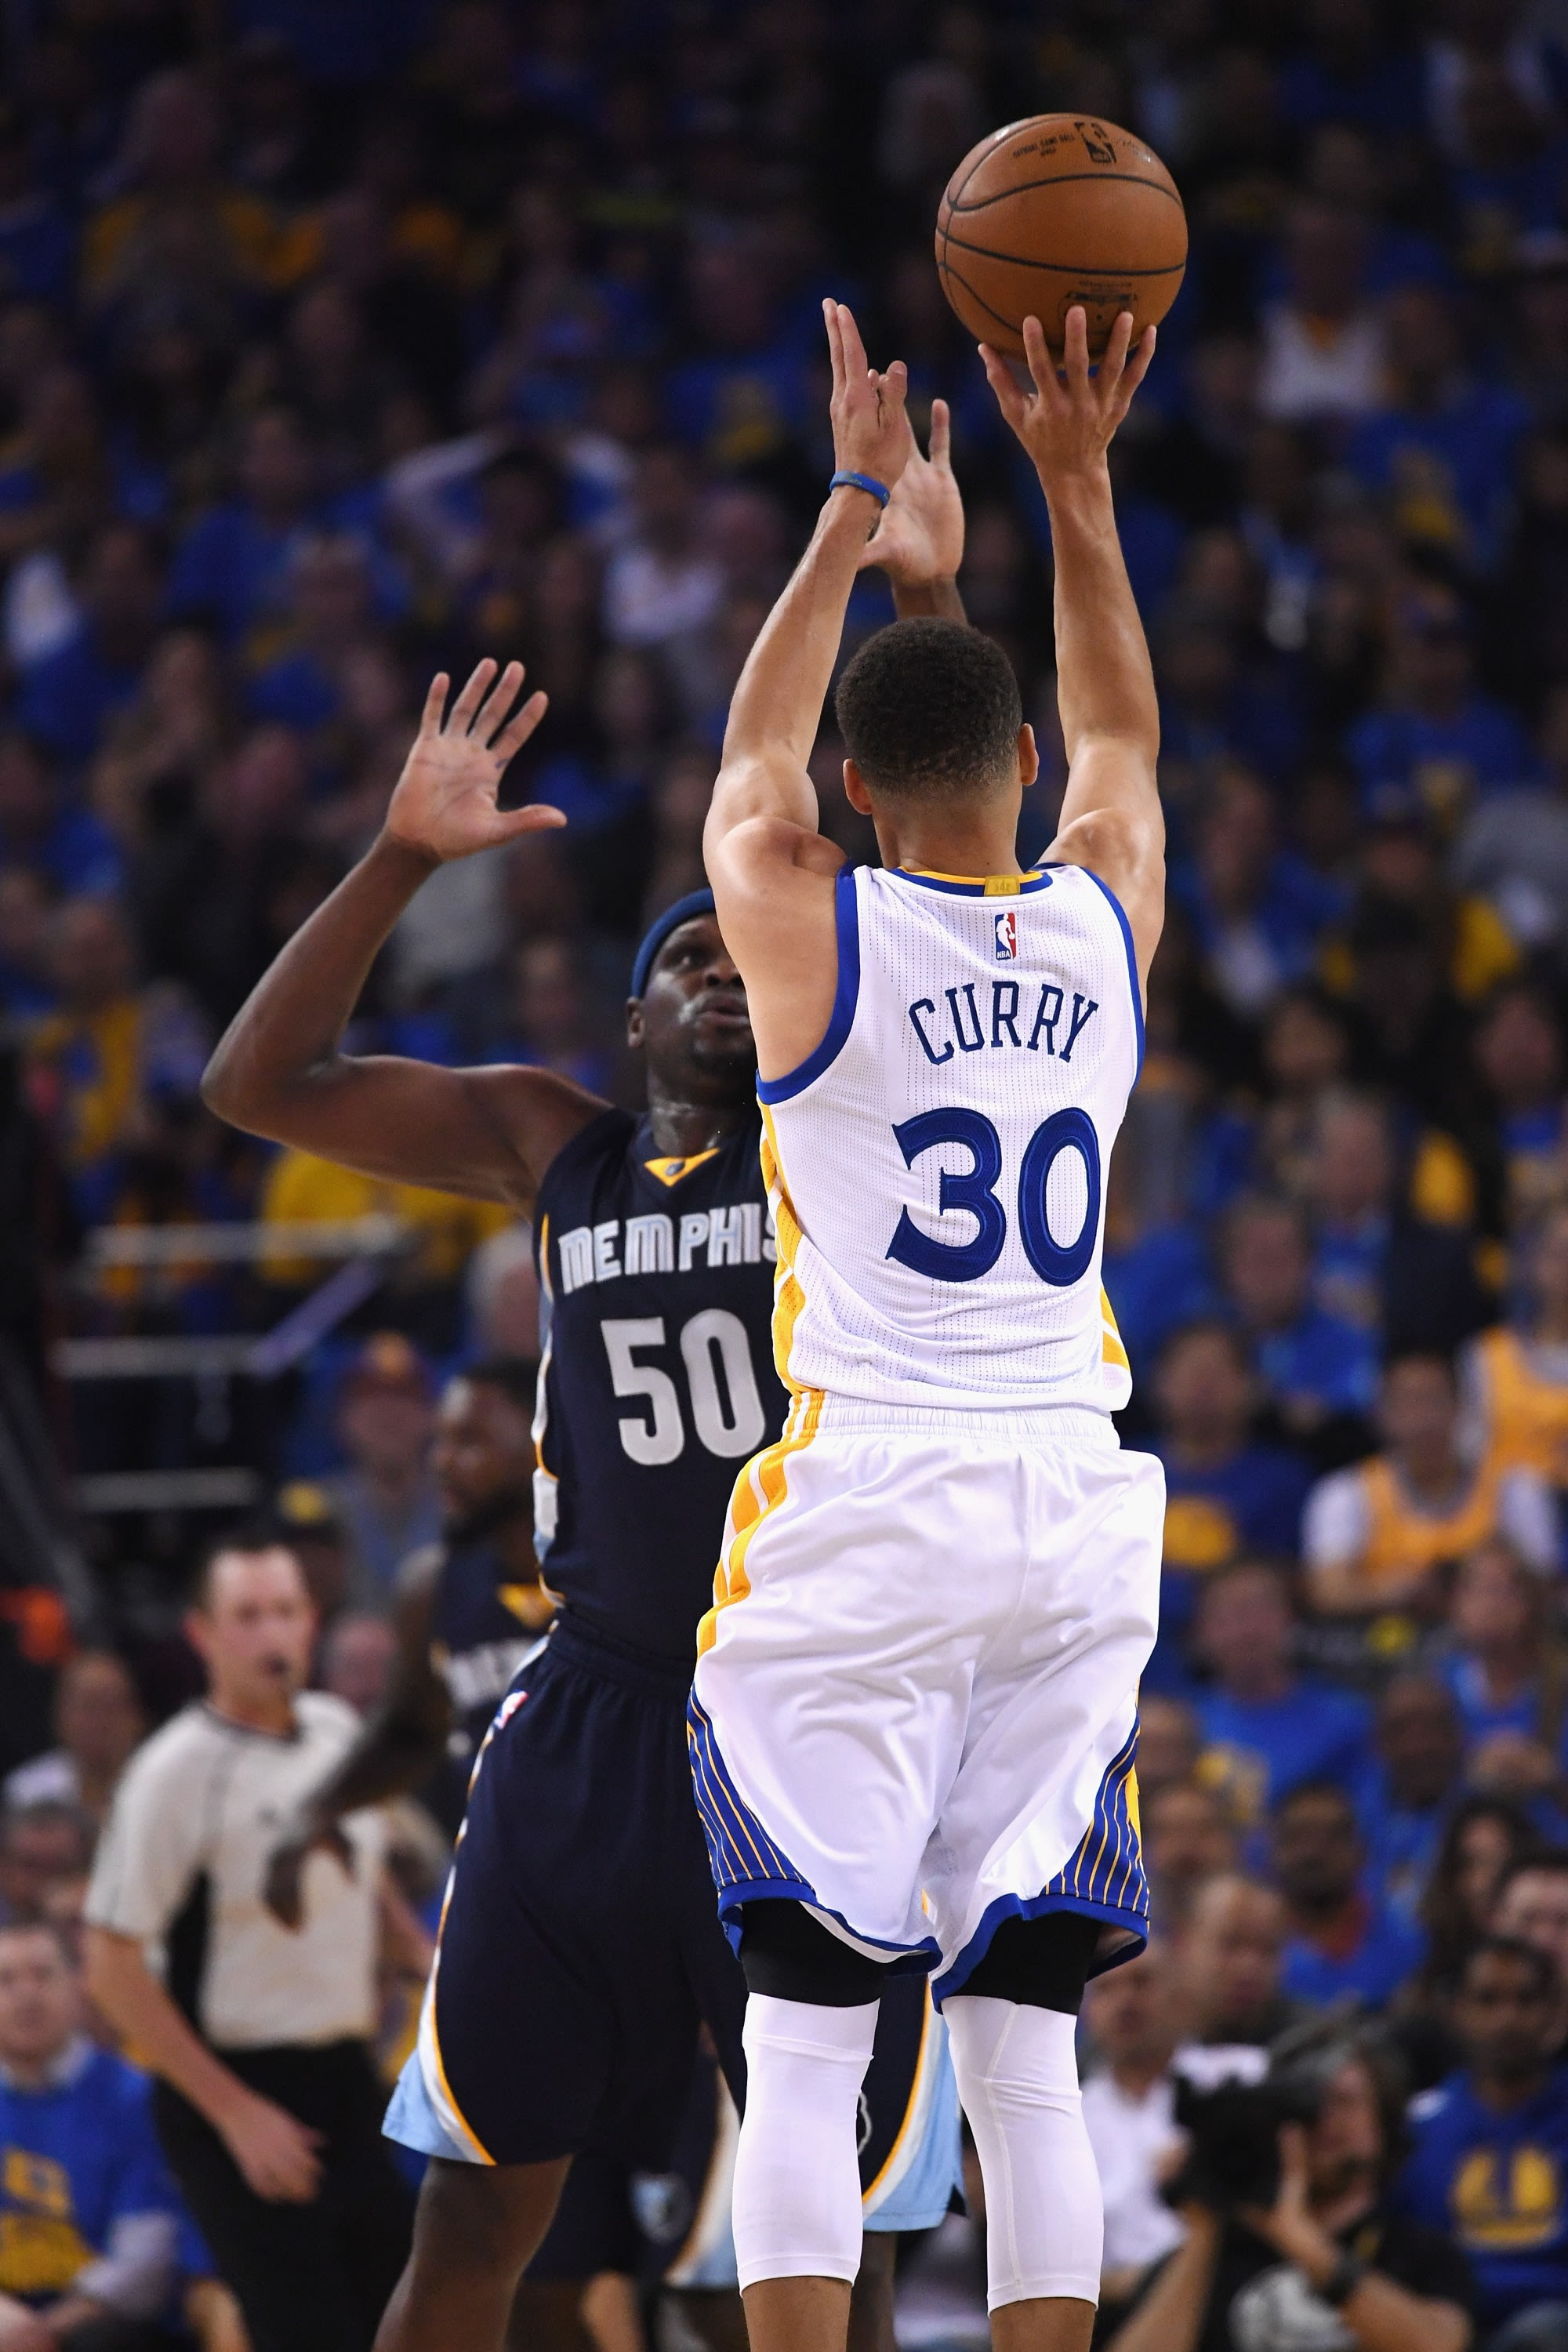 Stephen Curry put on a show in the Warrior's record-setting win. (Thearon W. Henderson/Getty Images)